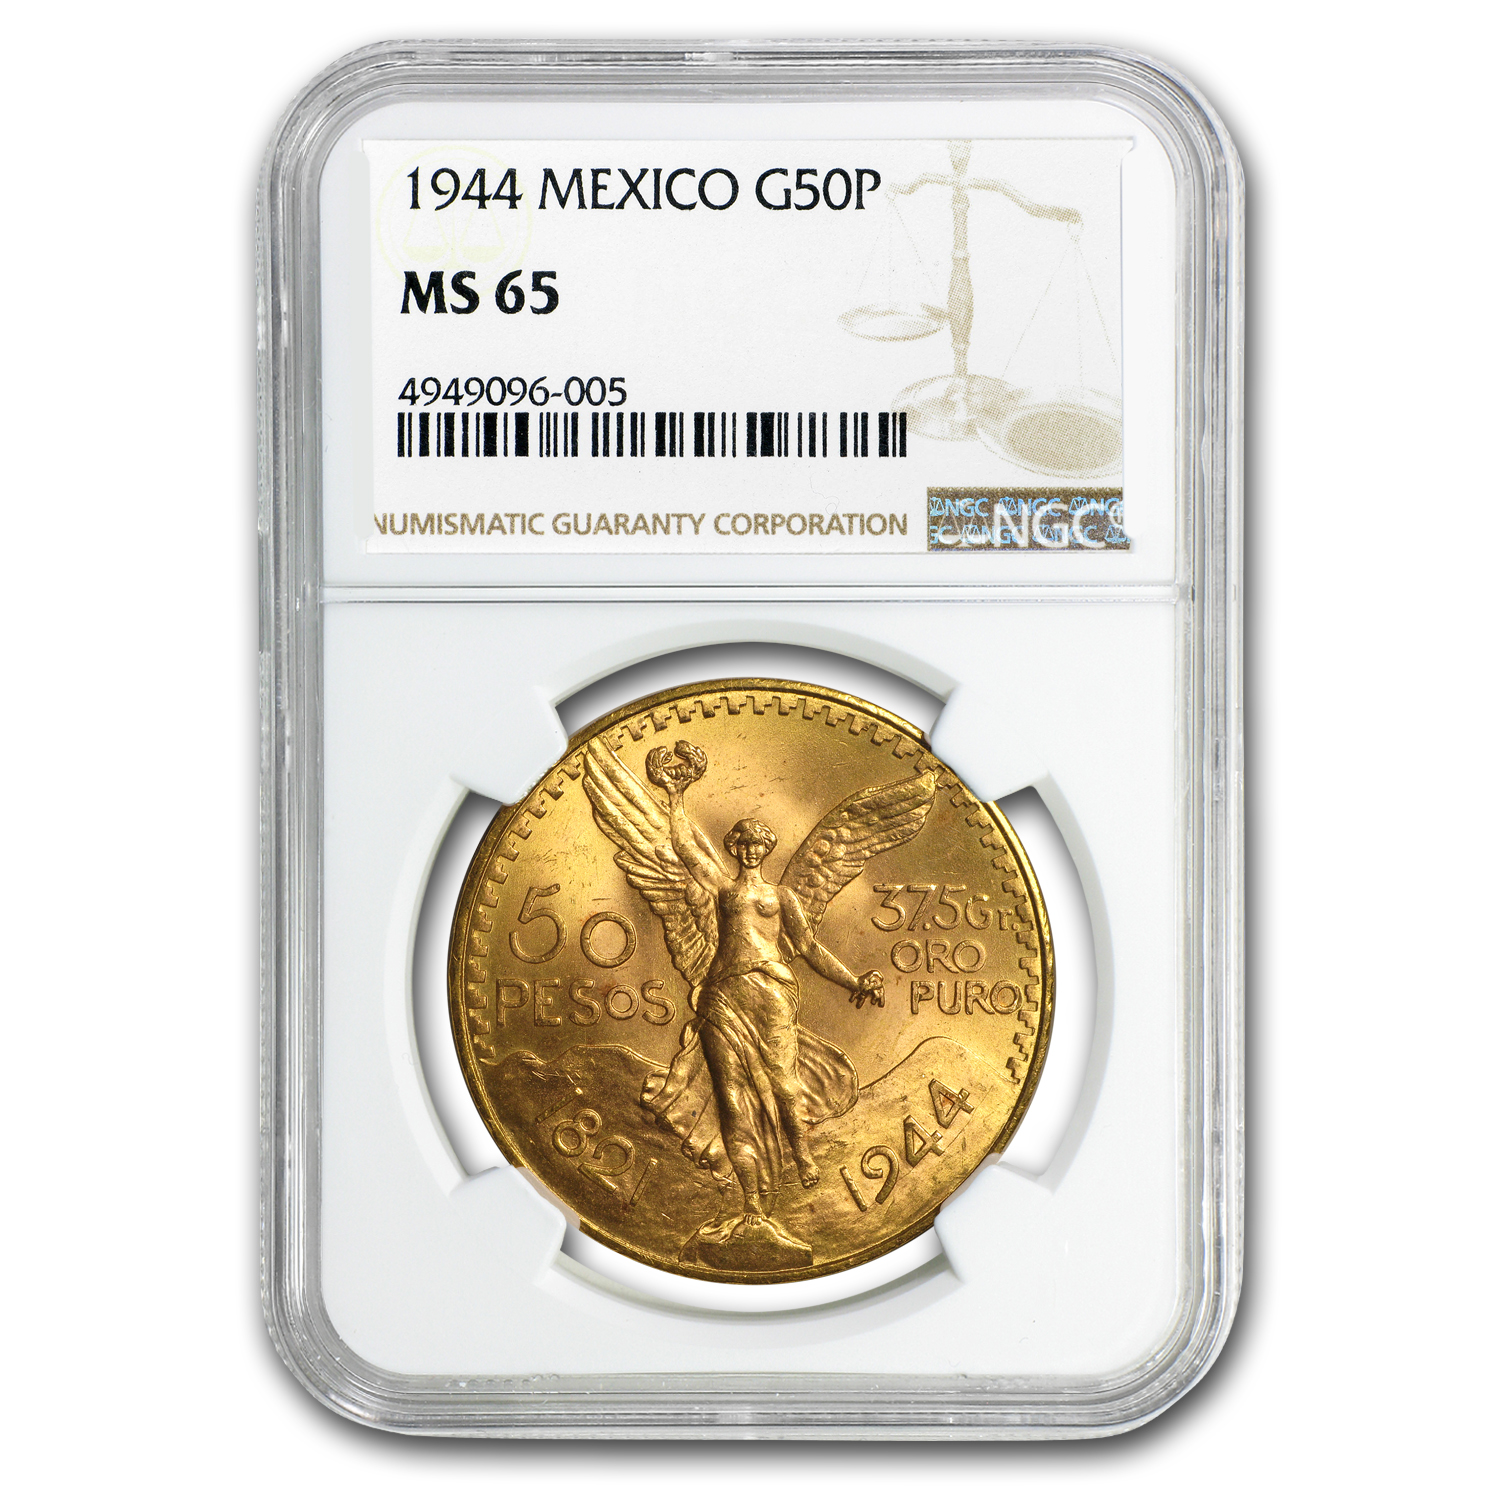 1944 Mexico Gold 50 Pesos MS-65 NGC